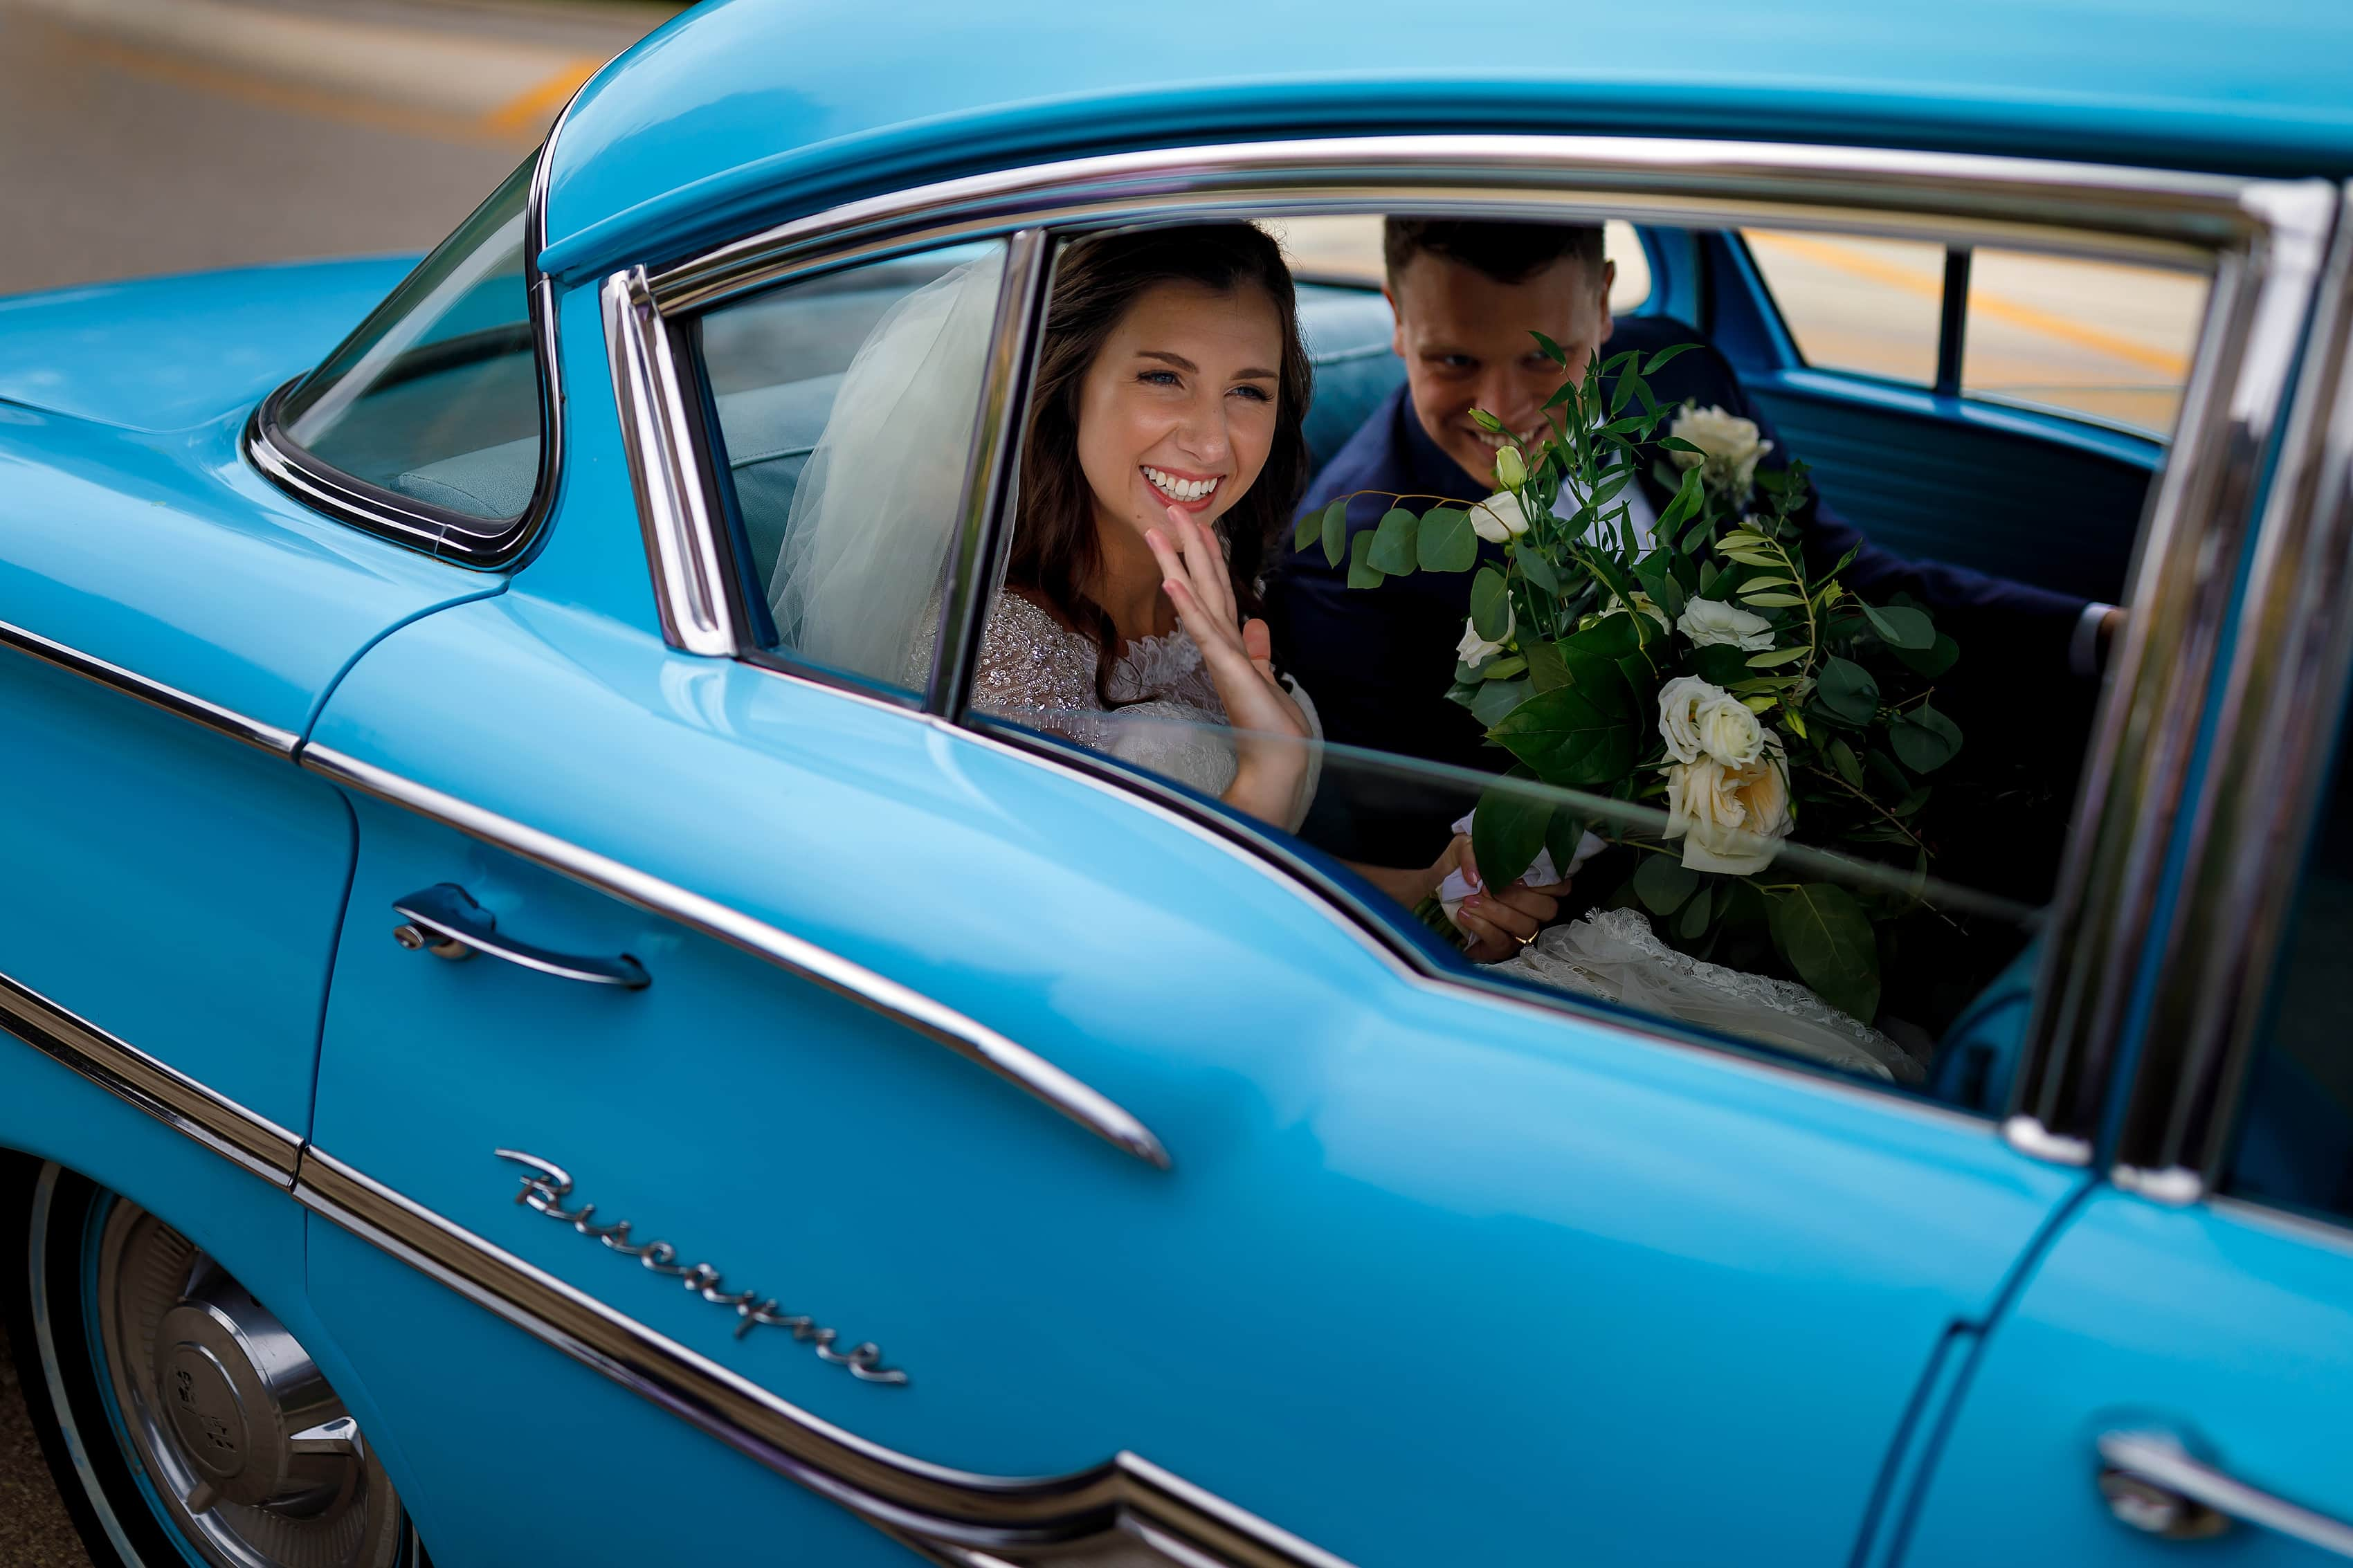 Bride and groom wave to guests while exiting wedding ceremony